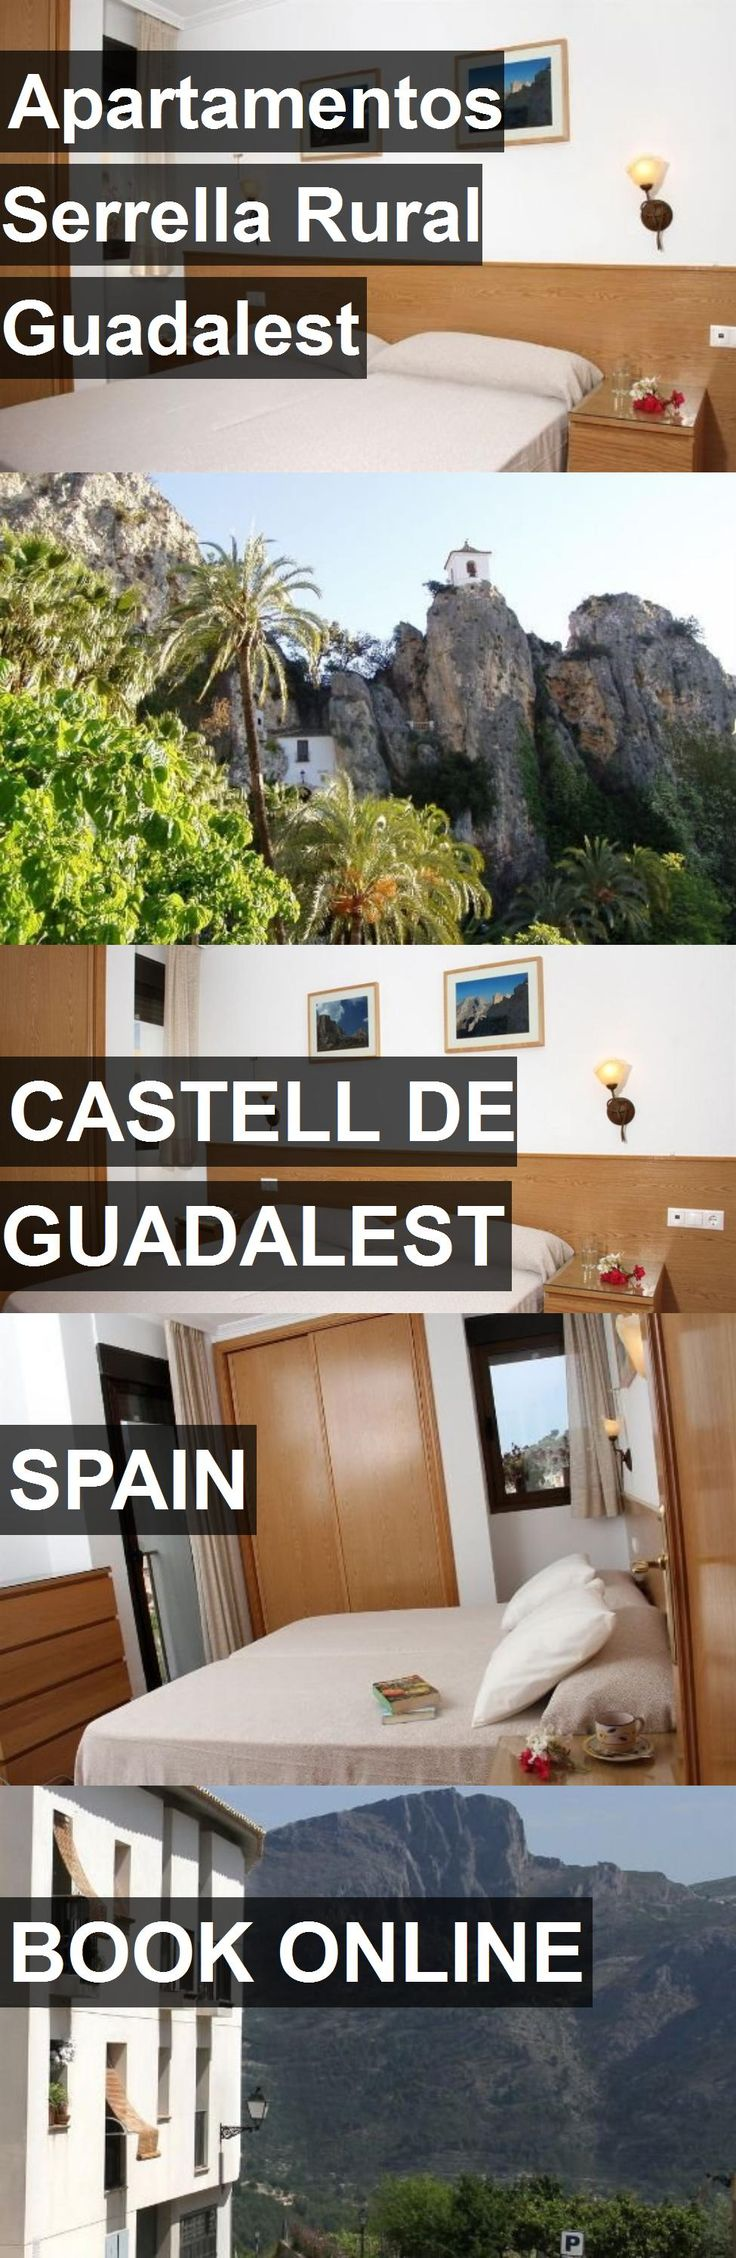 Hotel Apartamentos Serrella Rural Guadalest in Castell de Guadalest, Spain. For more information, photos, reviews and best prices please follow the link. #Spain #CastelldeGuadalest #ApartamentosSerrellaRuralGuadalest #hotel #travel #vacation